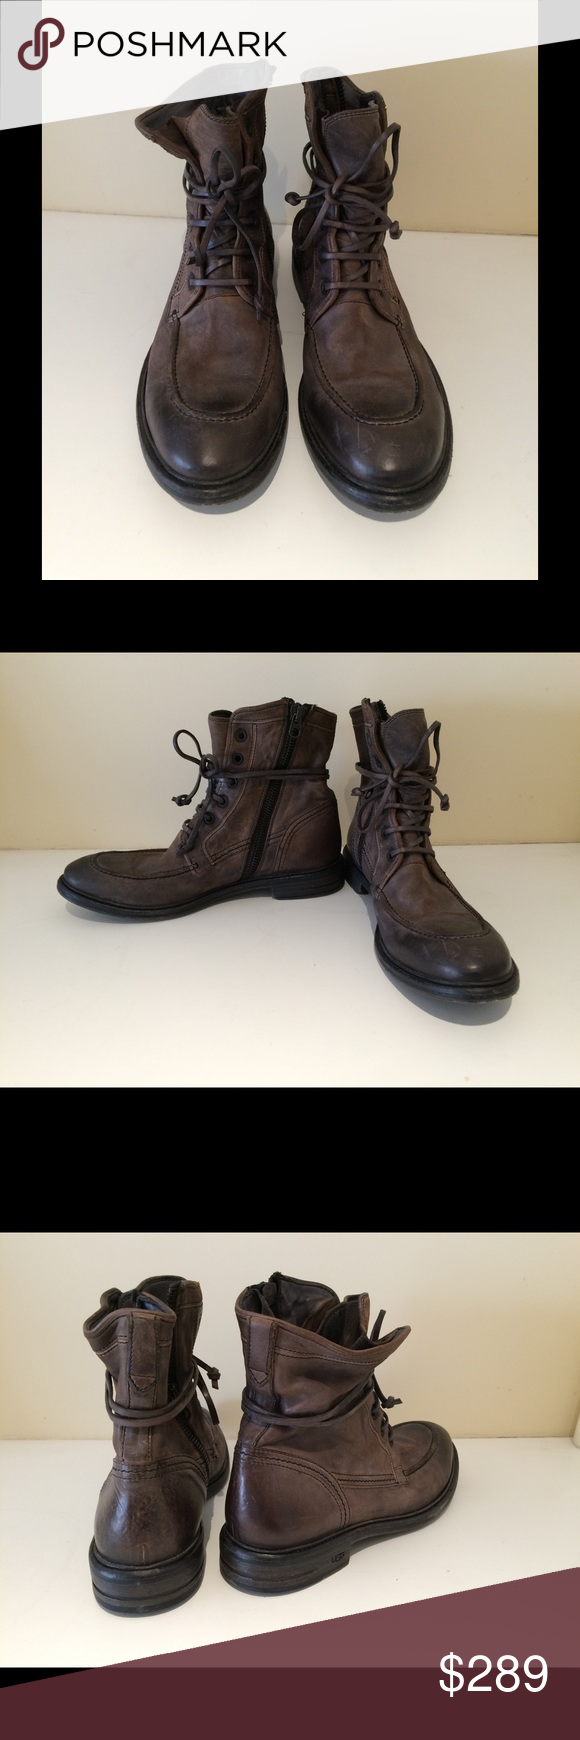 Ugg Collection Vanni Charcoal Boots 11.5 Men's charcoal Ugg Collection boots. Side zippers and lace up. Size 11.5. Great condition, like new with original box and duster bag. UGG Shoes Boots